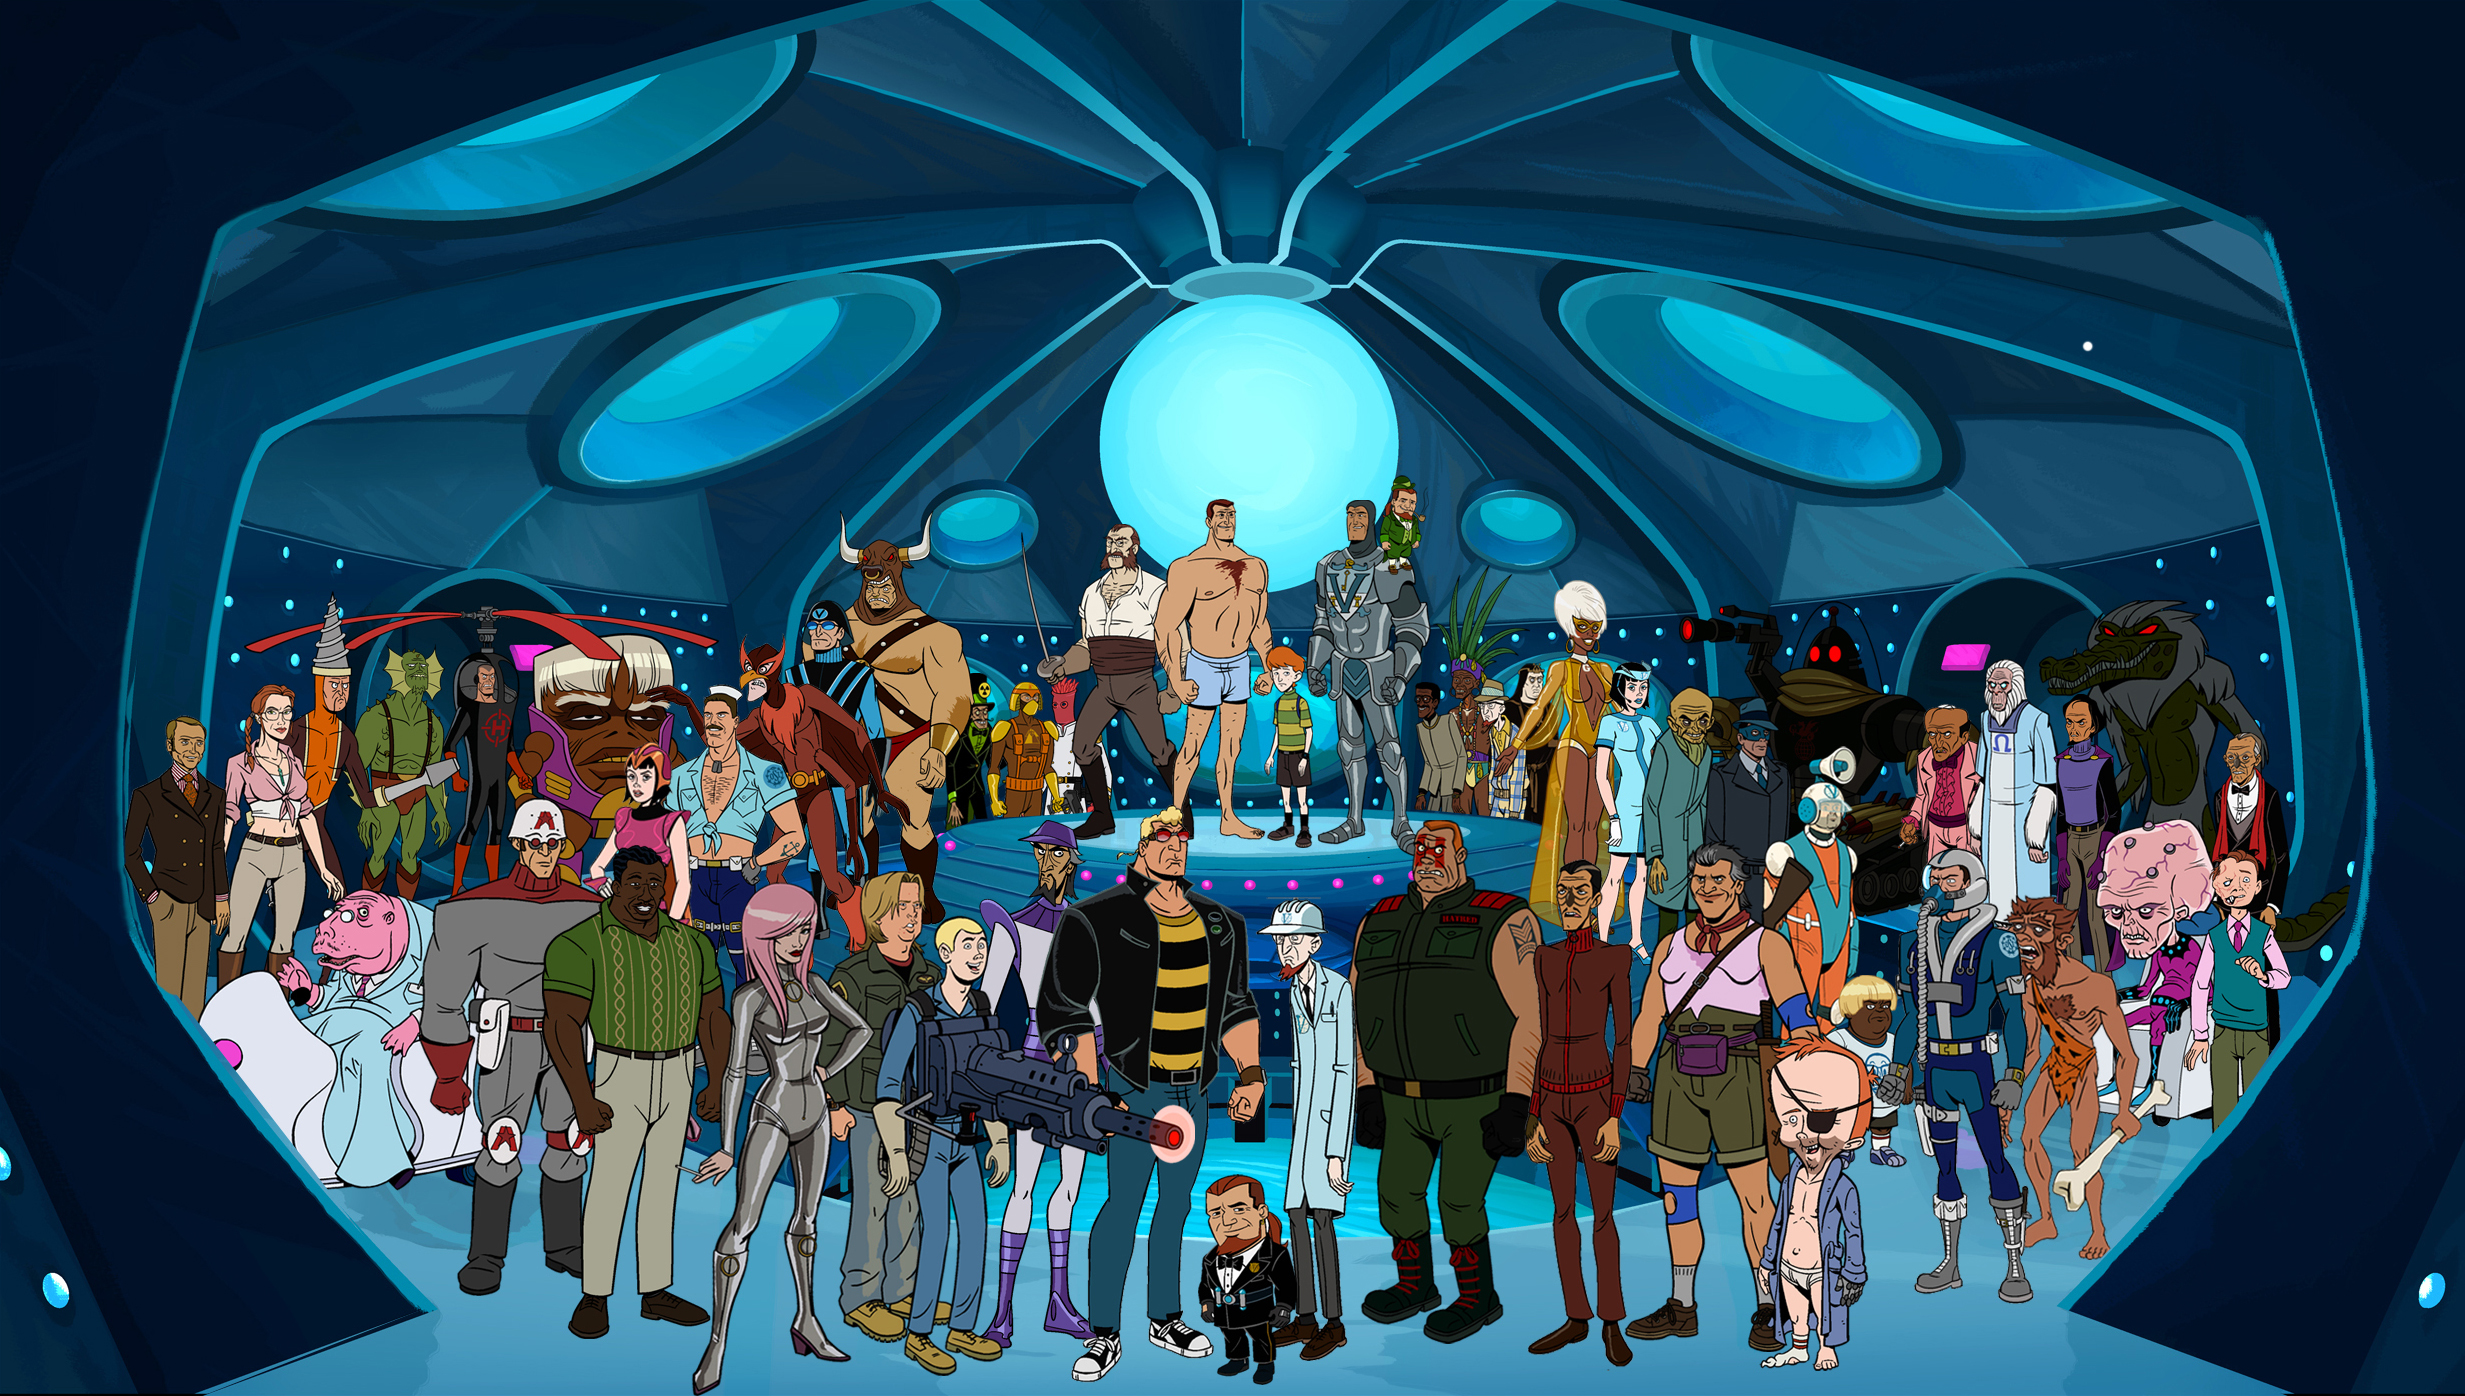 The Venture Brothers Backgrounds, Compatible - PC, Mobile, Gadgets| 2465x1396 px